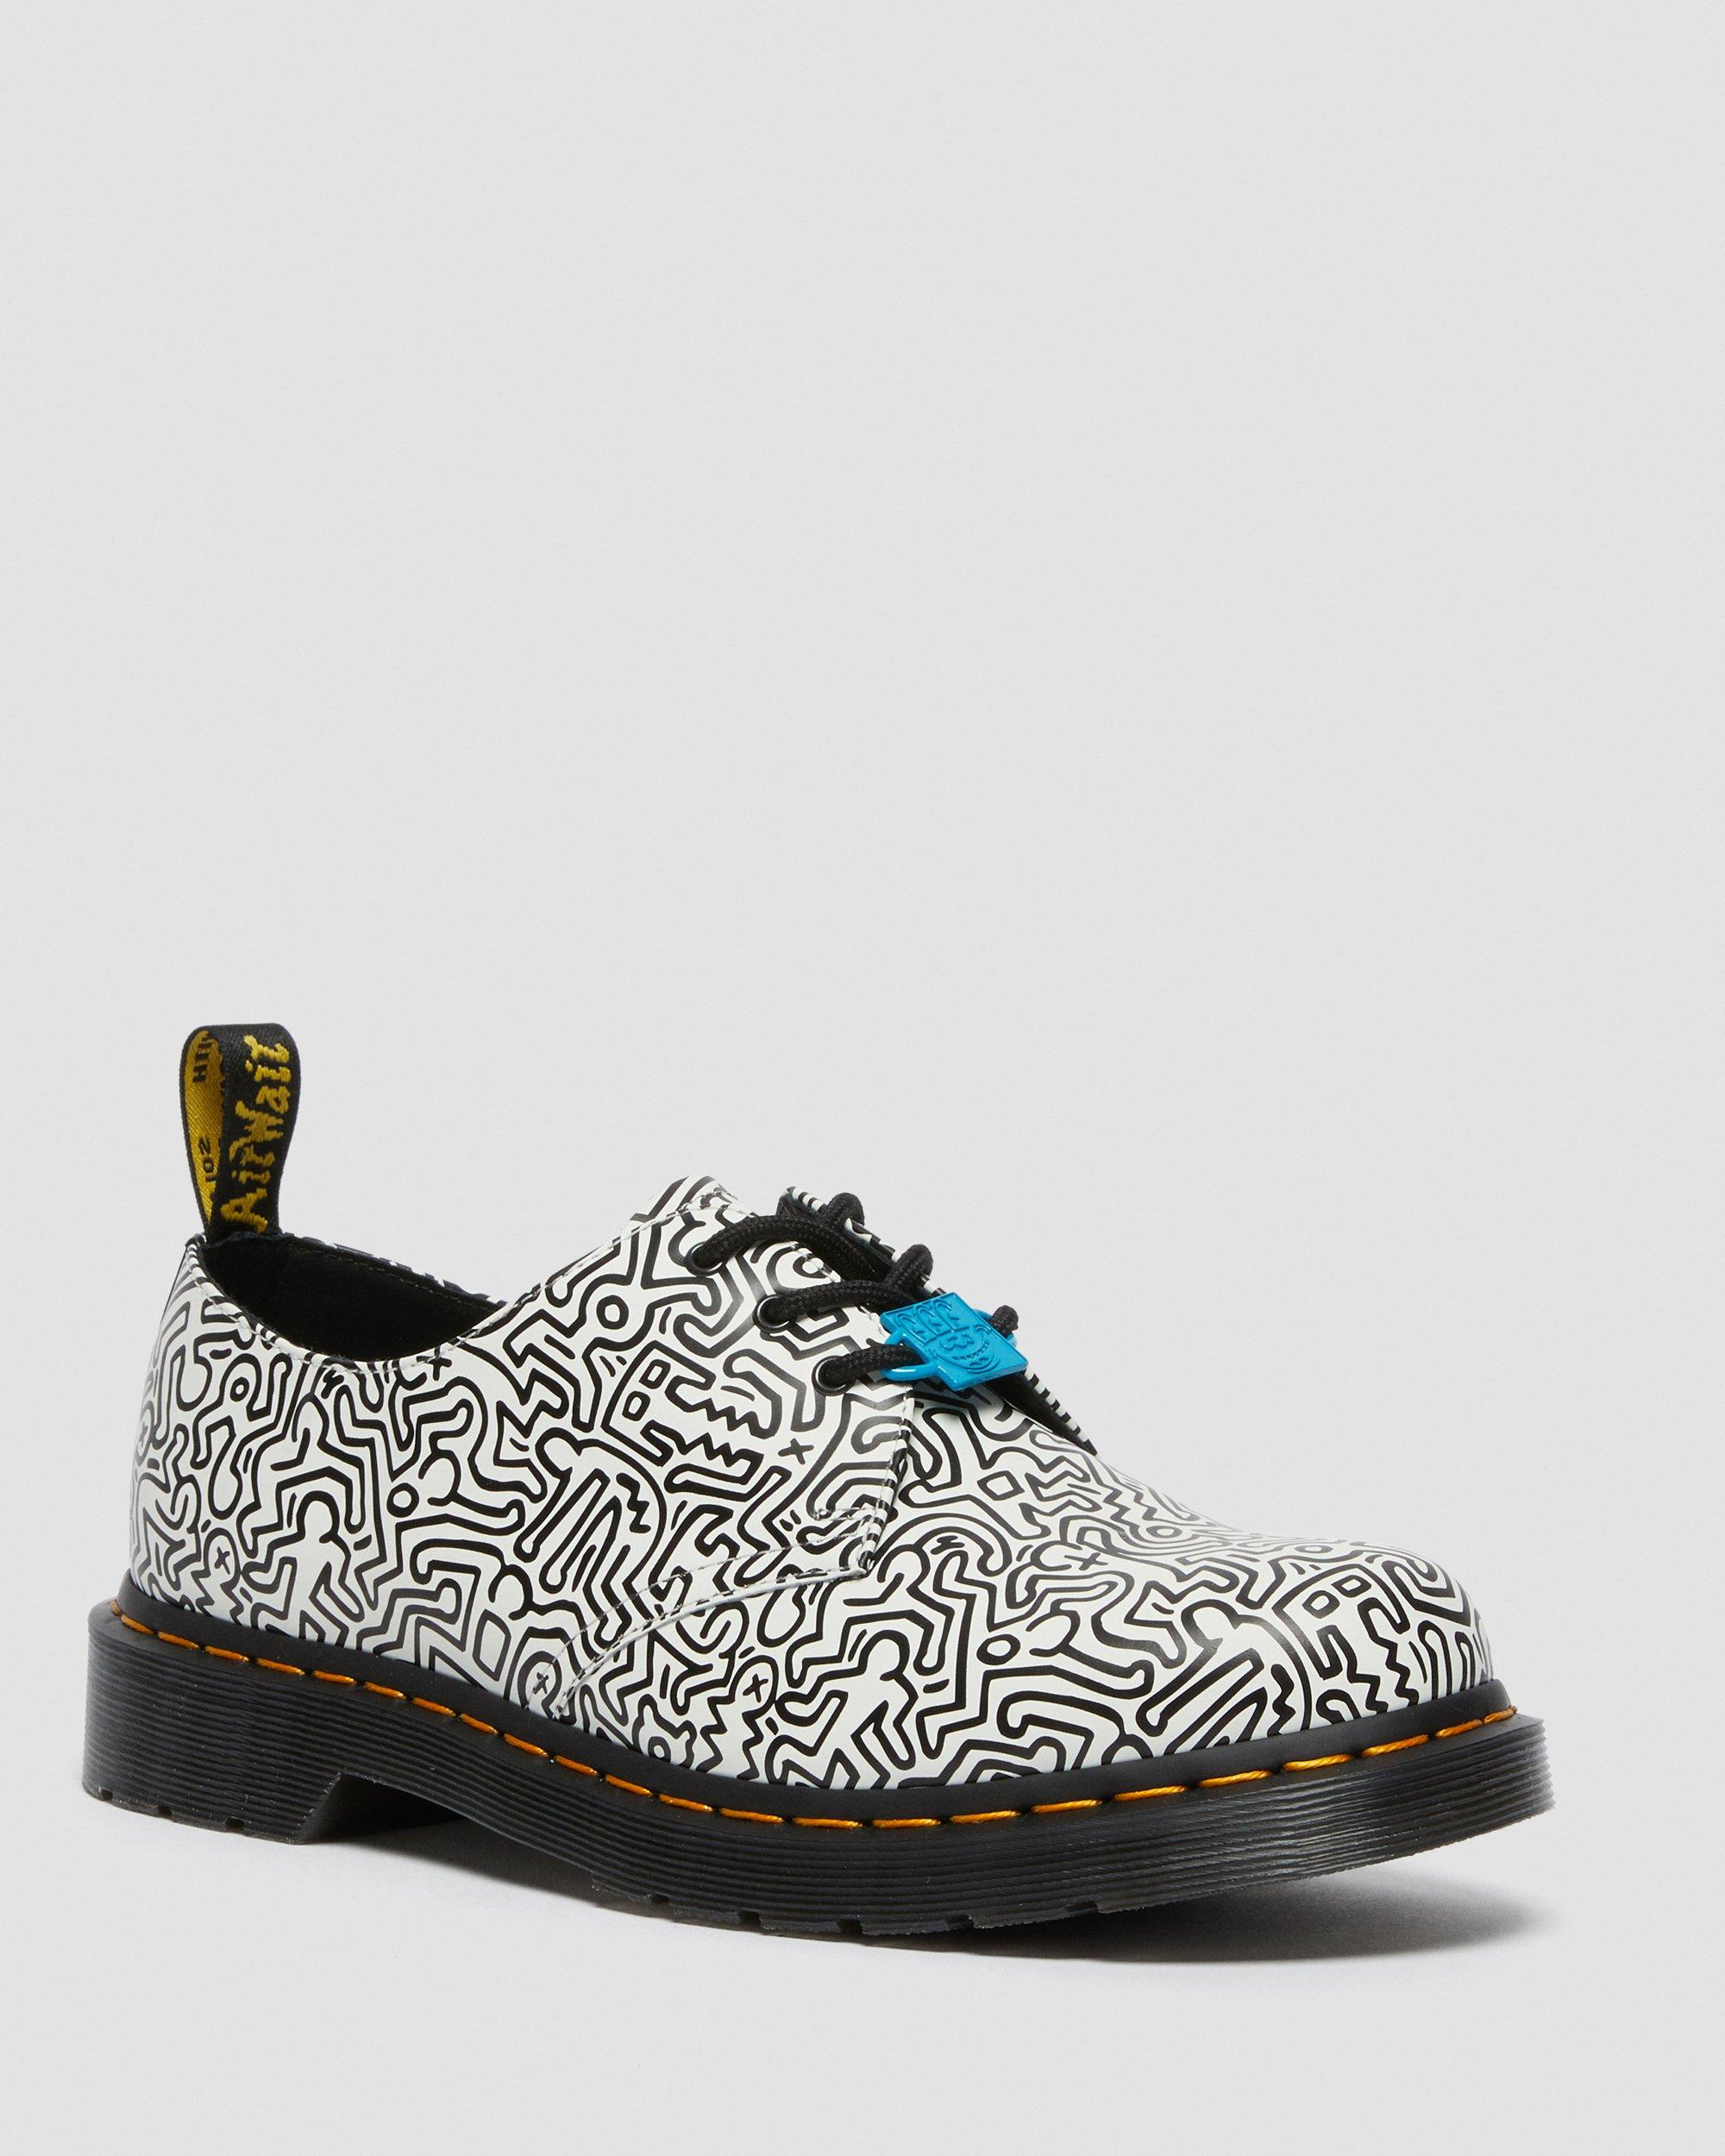 KEITH HARING 1461 PRINTED LEATHER OXFORD SHOES | Dr. Martens